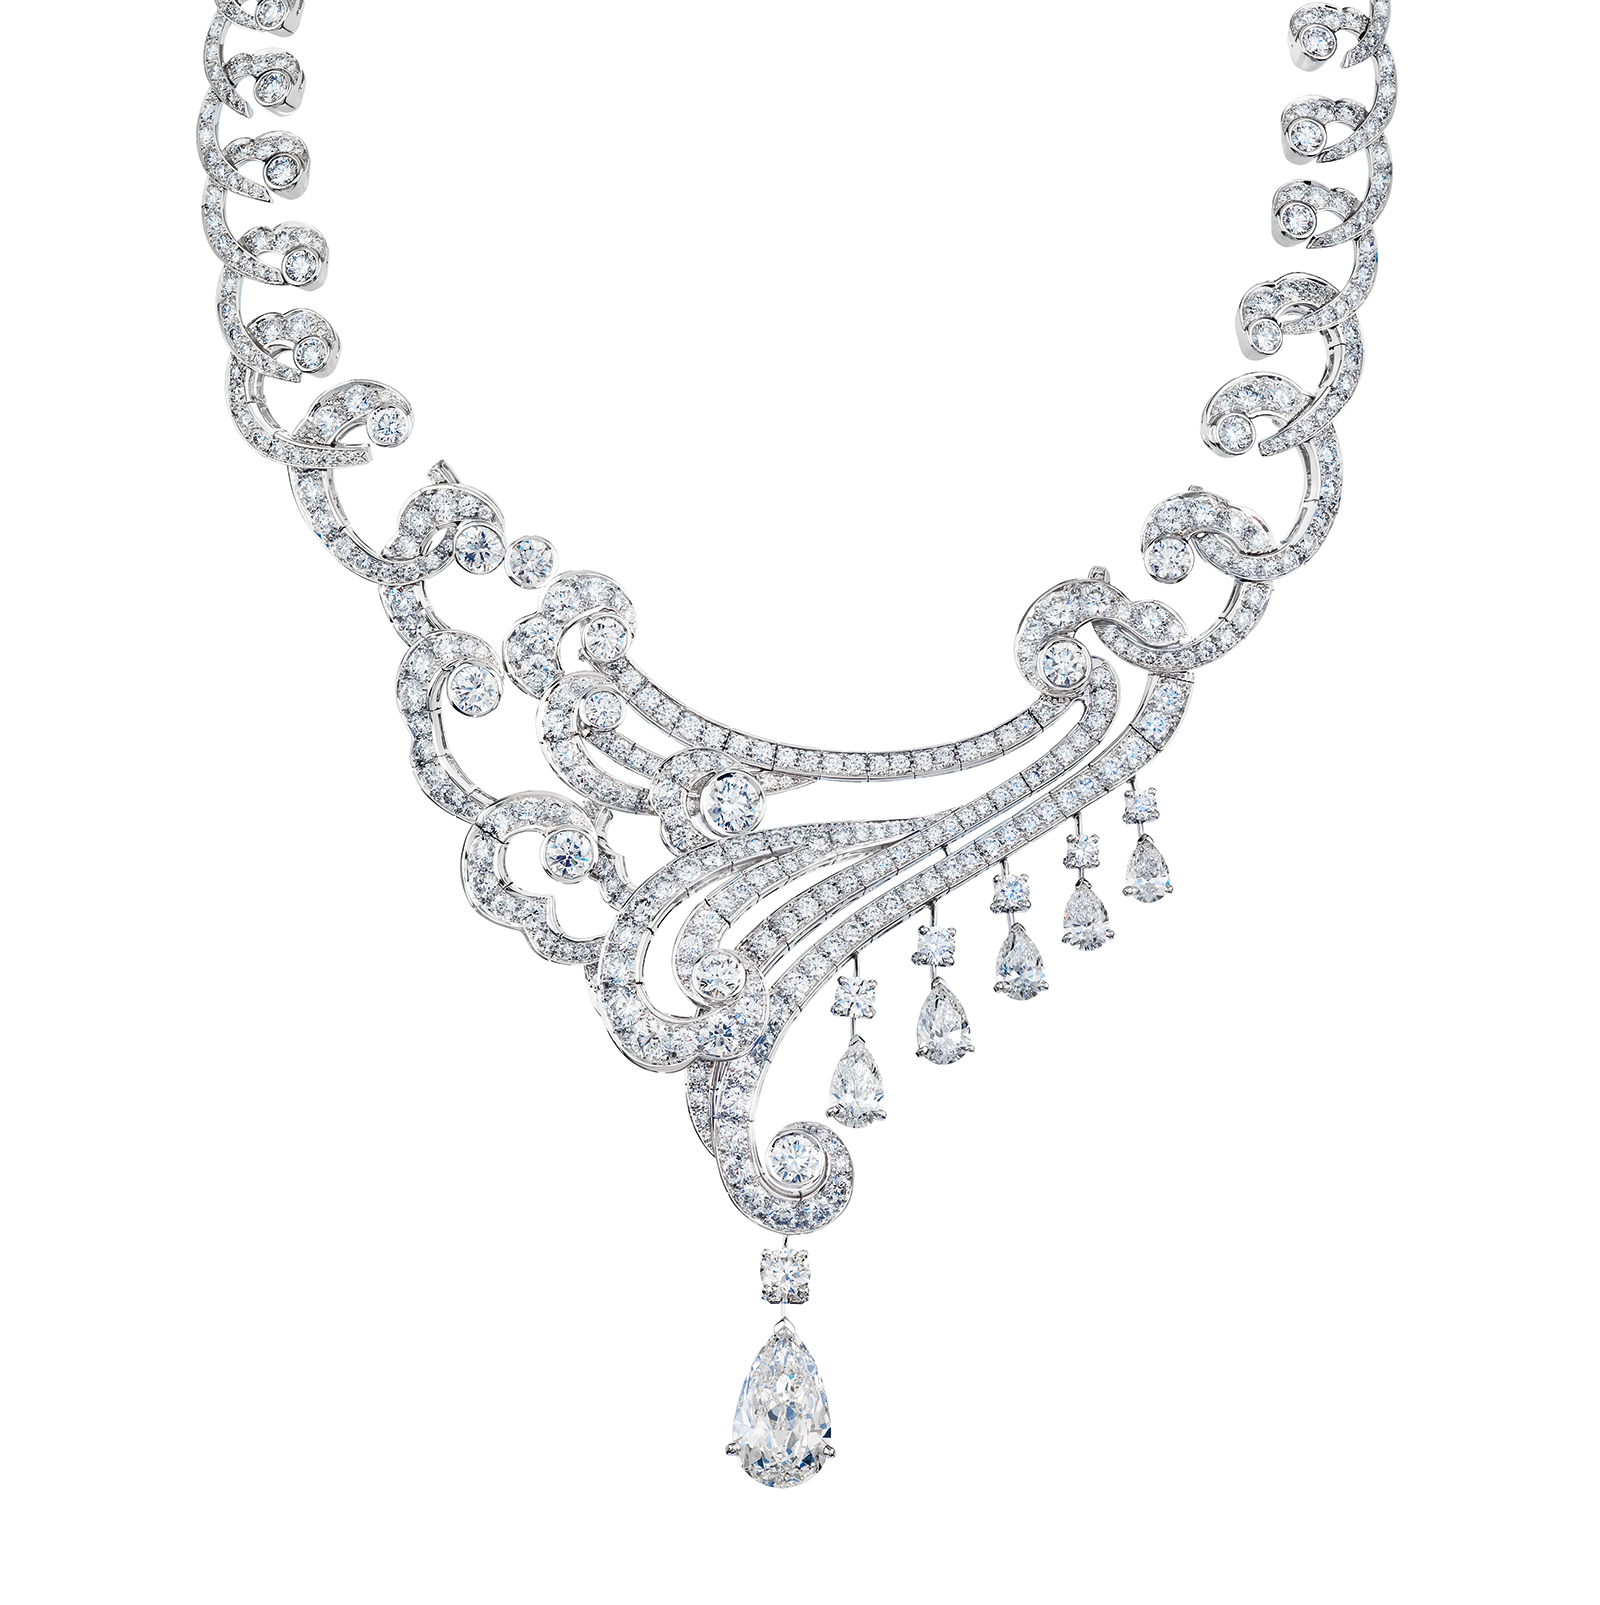 The Sirocco Necklace From De Beers